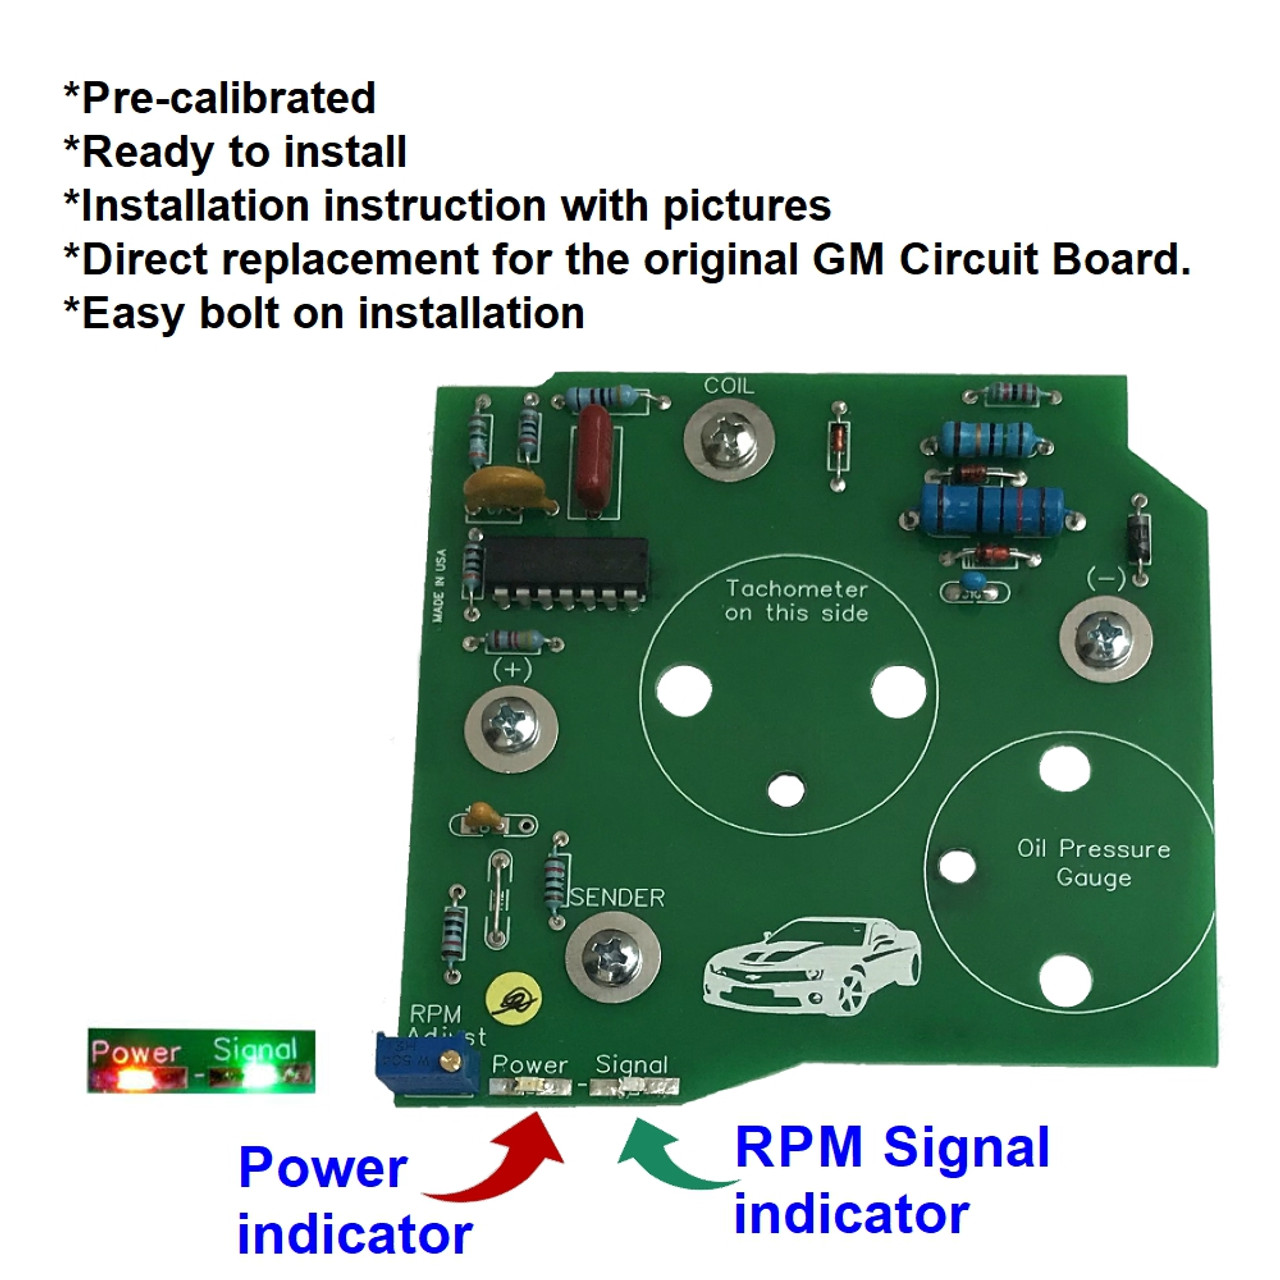 NEW 1982-89 Chevy Camaro V6 Tachometer Circuit Board